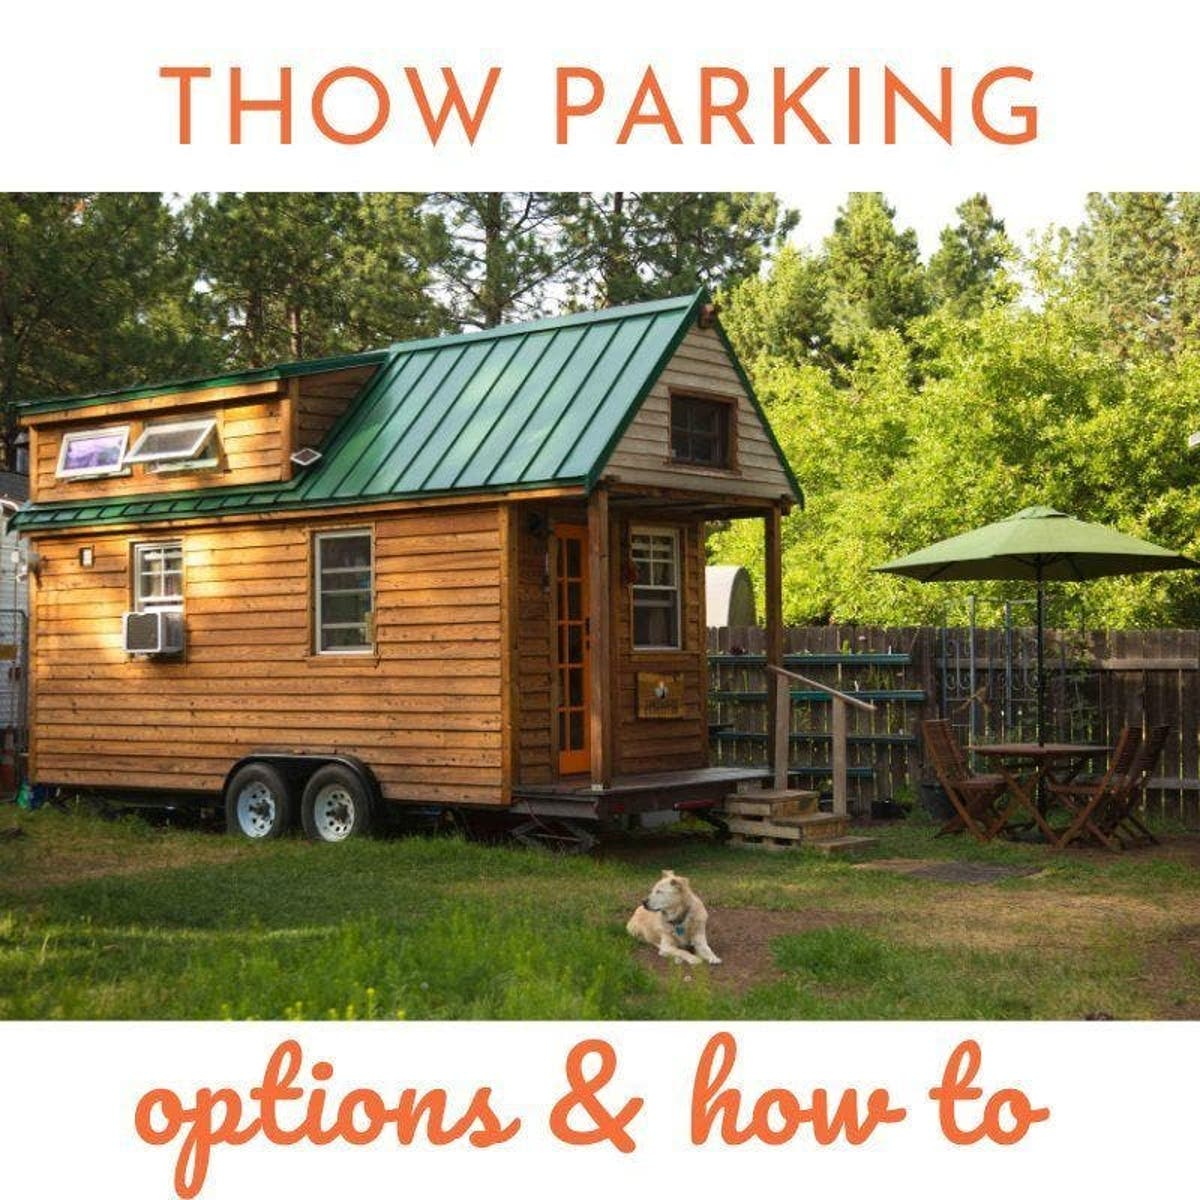 Tiny House Parking: What Are Your Options? - Tiny House Blog